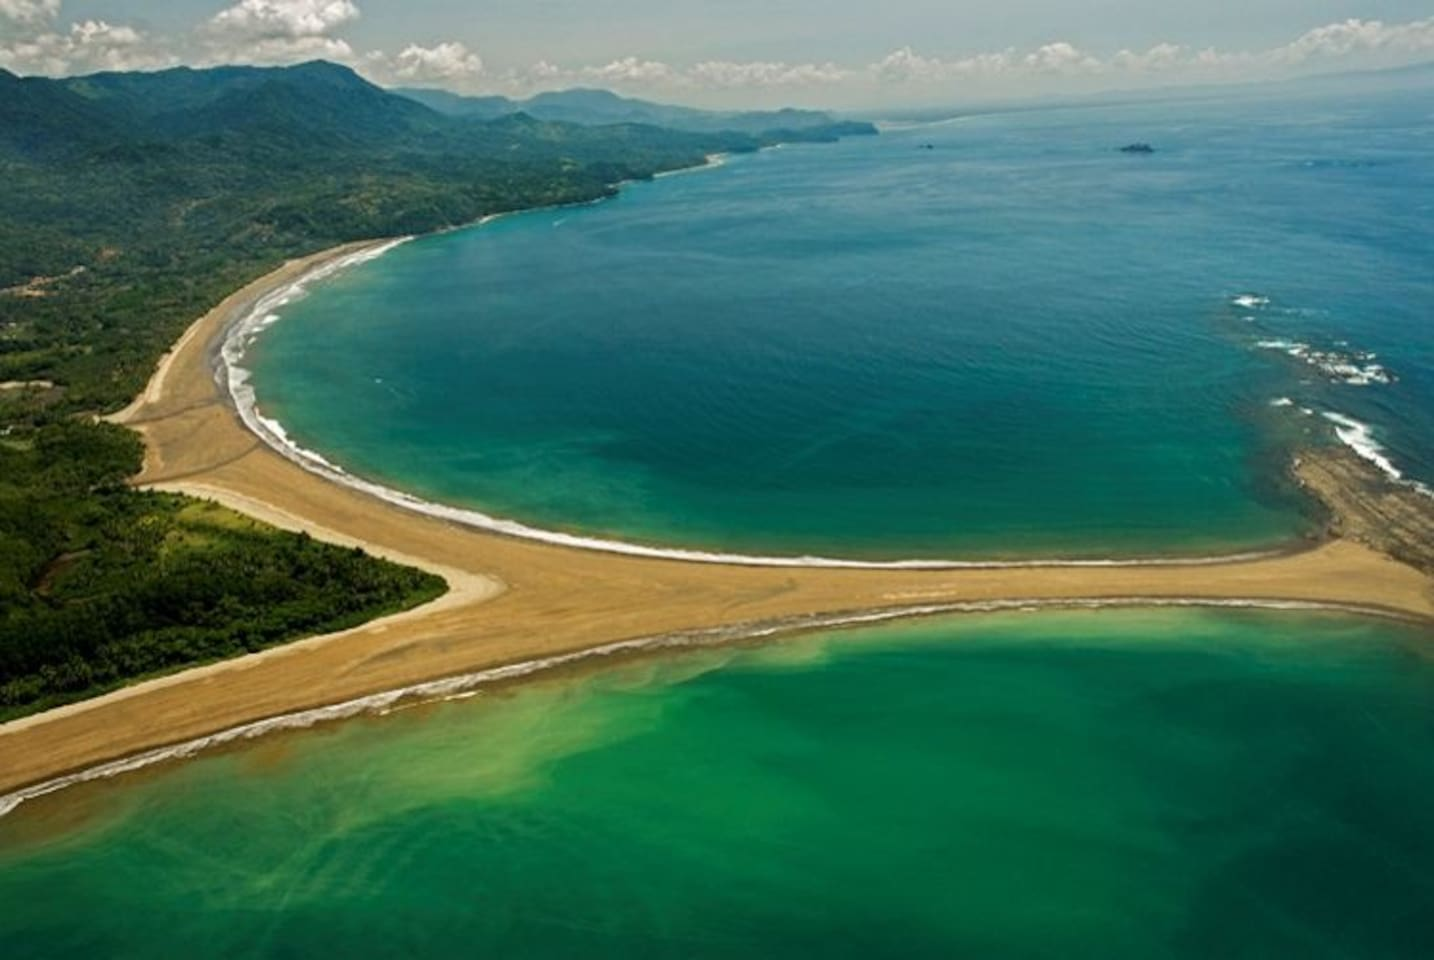 PurUvita is nearby the world famous Whale's Tail Beach of Marino Ballena National Park, a beach that has been described as the most beautiful in all of Costa Rica.